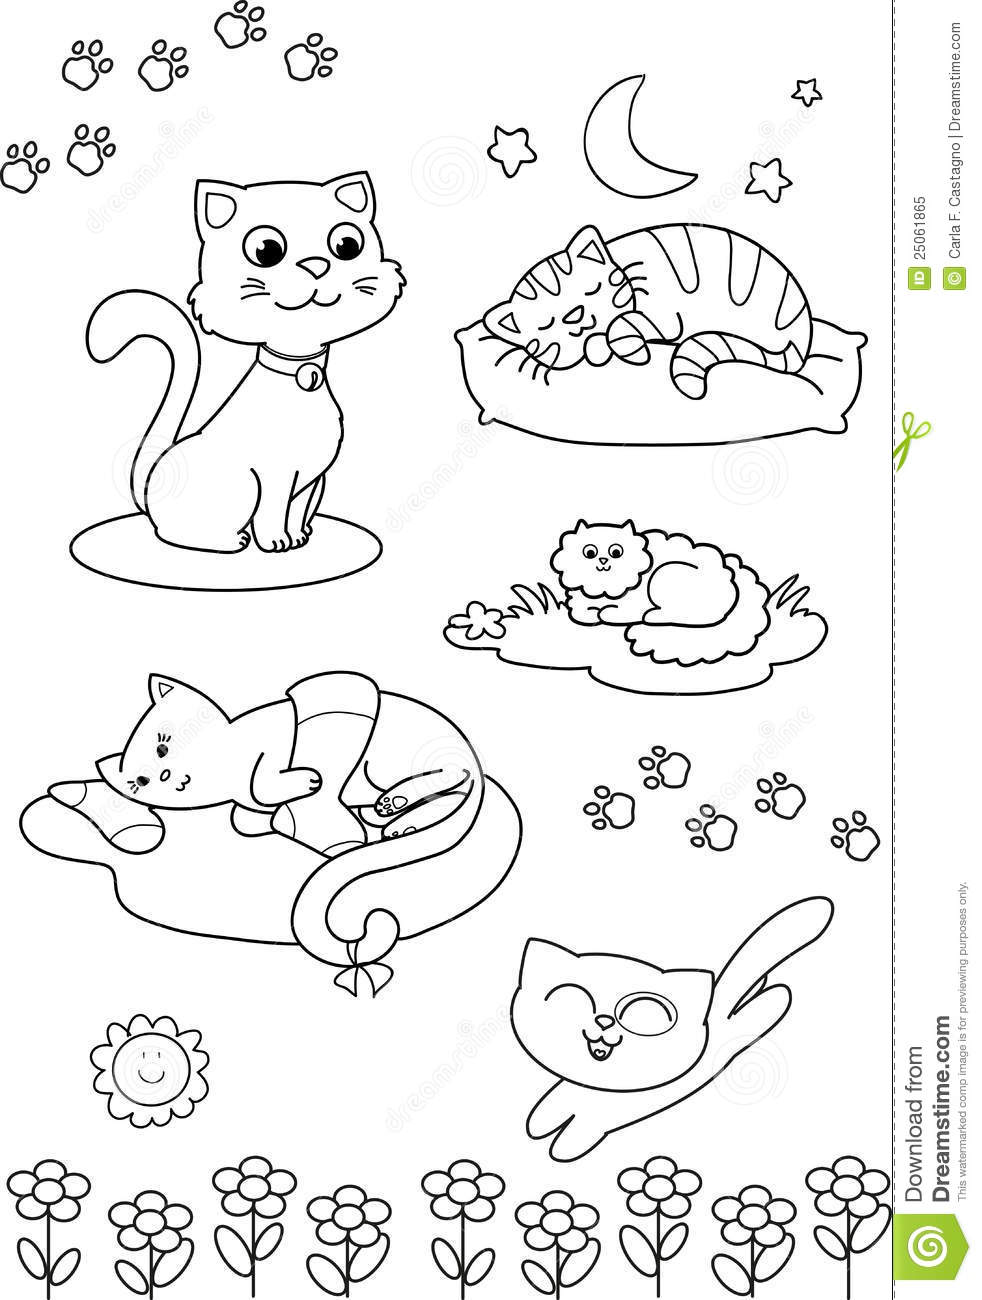 Cute Cartoon Cats: Coloring Vector Page Royalty Free Stock